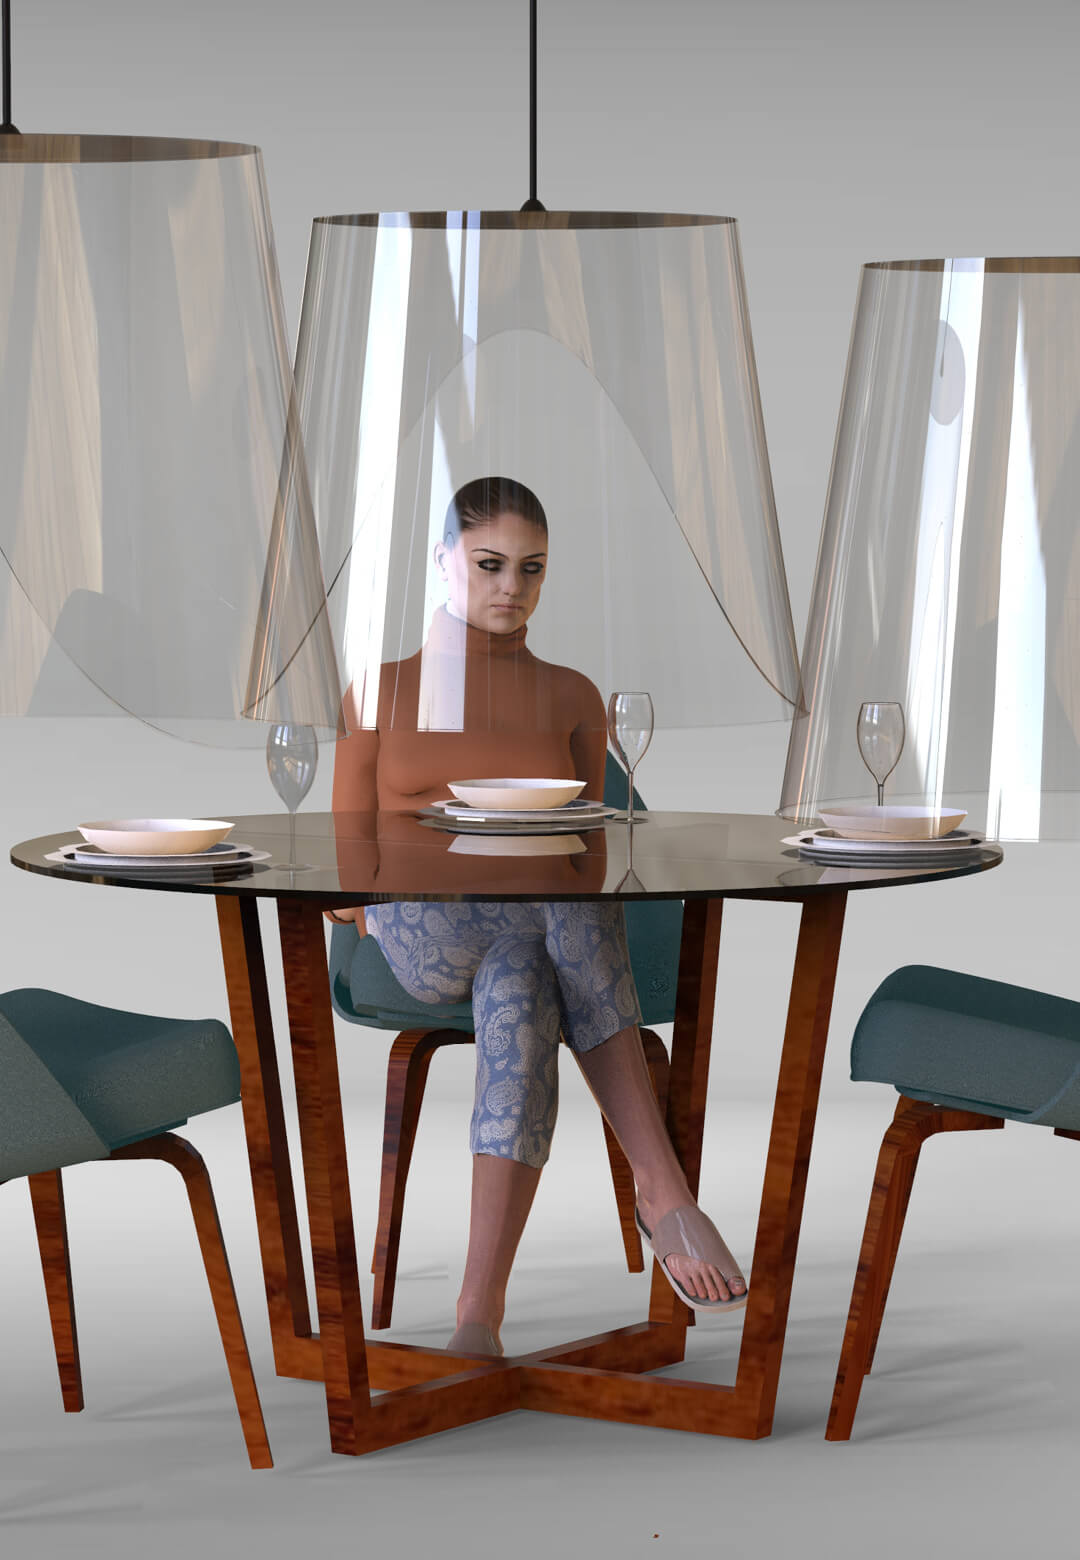 Plex'eat conceptualised by French designer Christophe Gernigon offers a way to dine safely | Plex'eat by Christophe Gernigon Studio | STIRworld